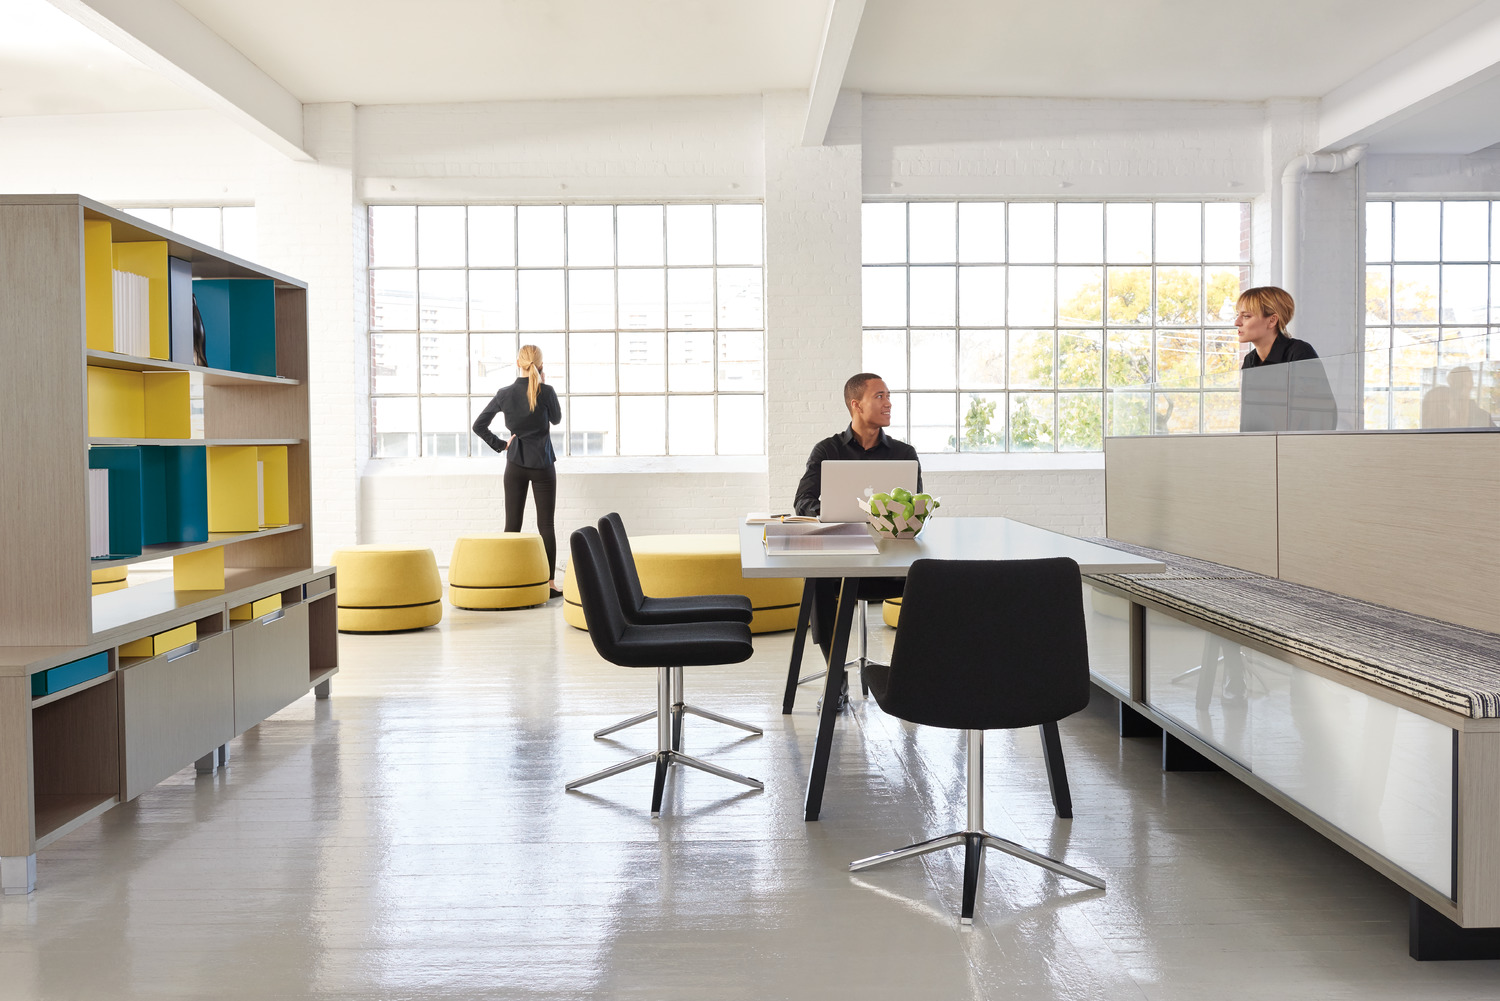 modern office - teknion offers an unparalleled range of systems and freestanding furnituretask chairs and soft seating storage space division products andaccessories